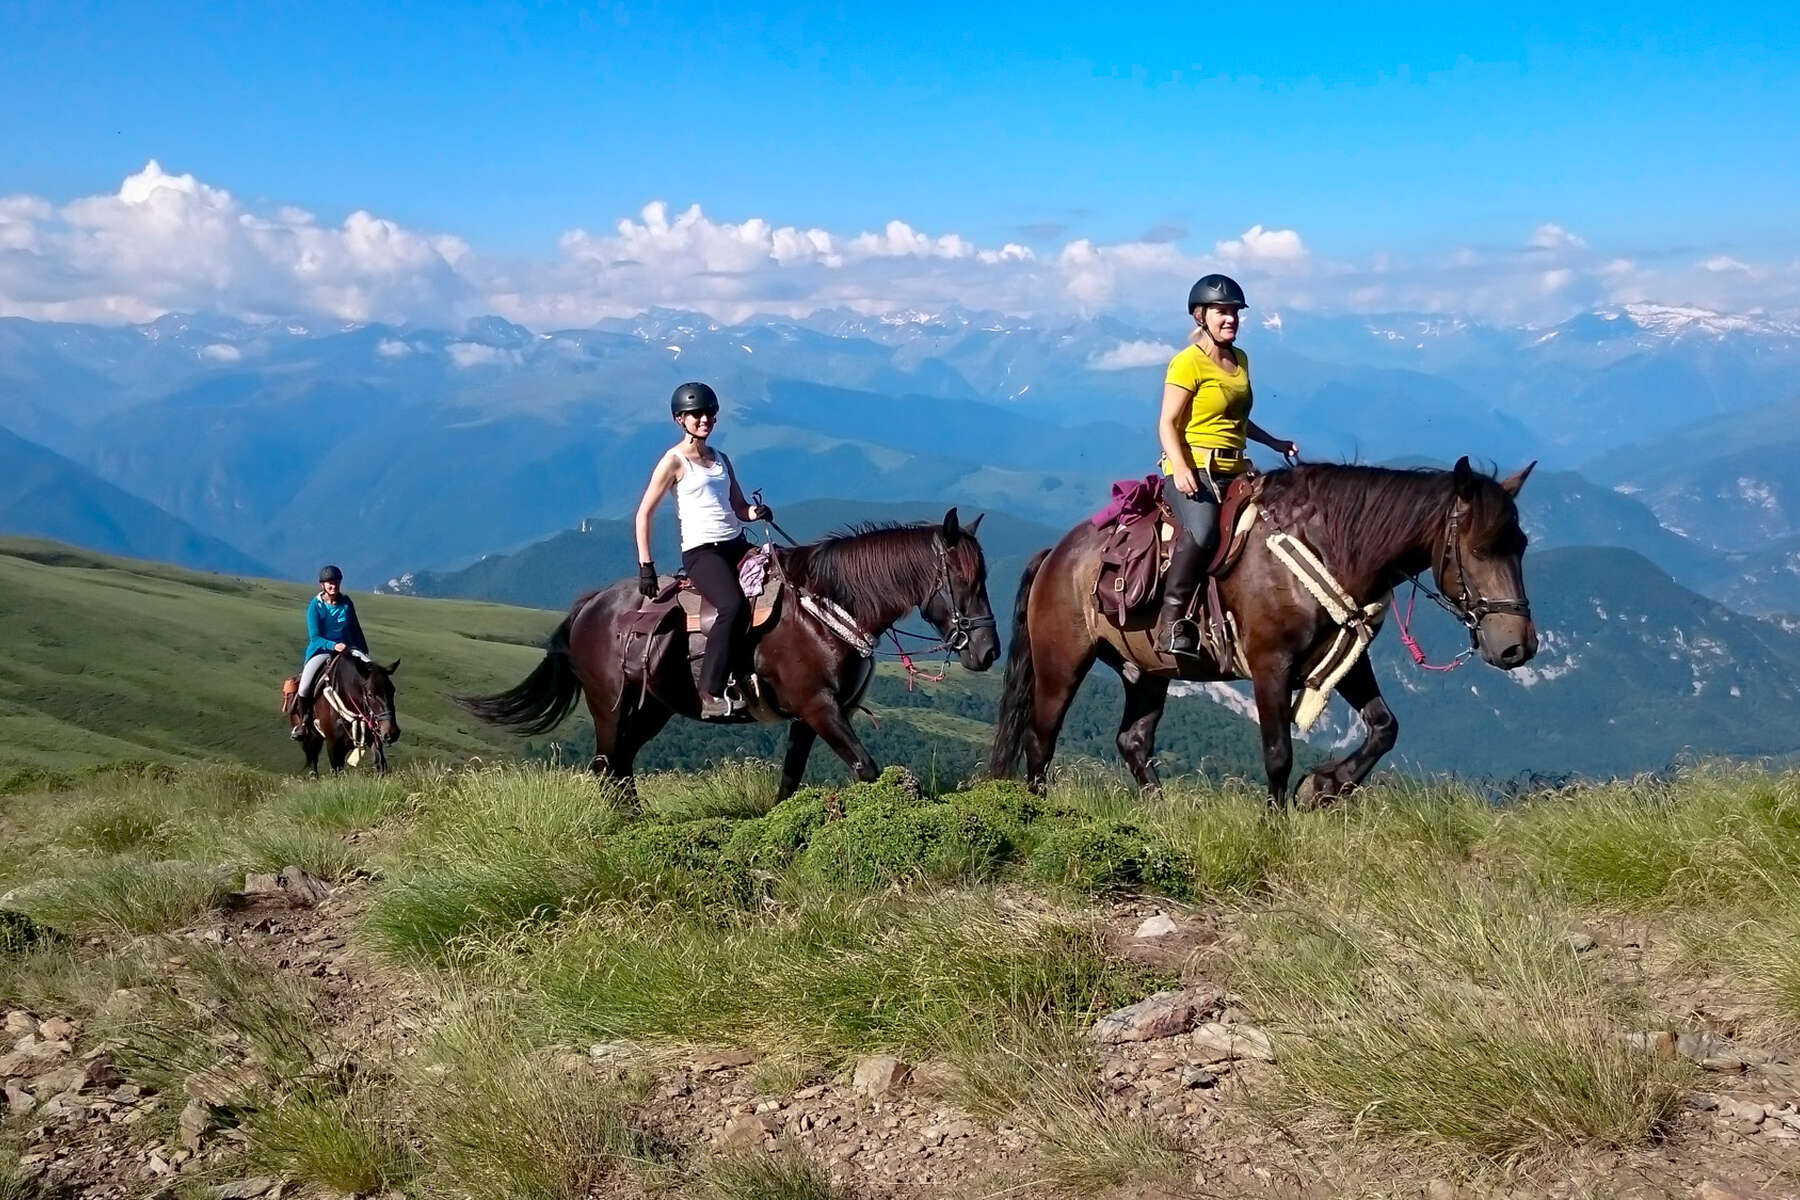 Riders and Merens horses in the Pyrenees on a trail ride